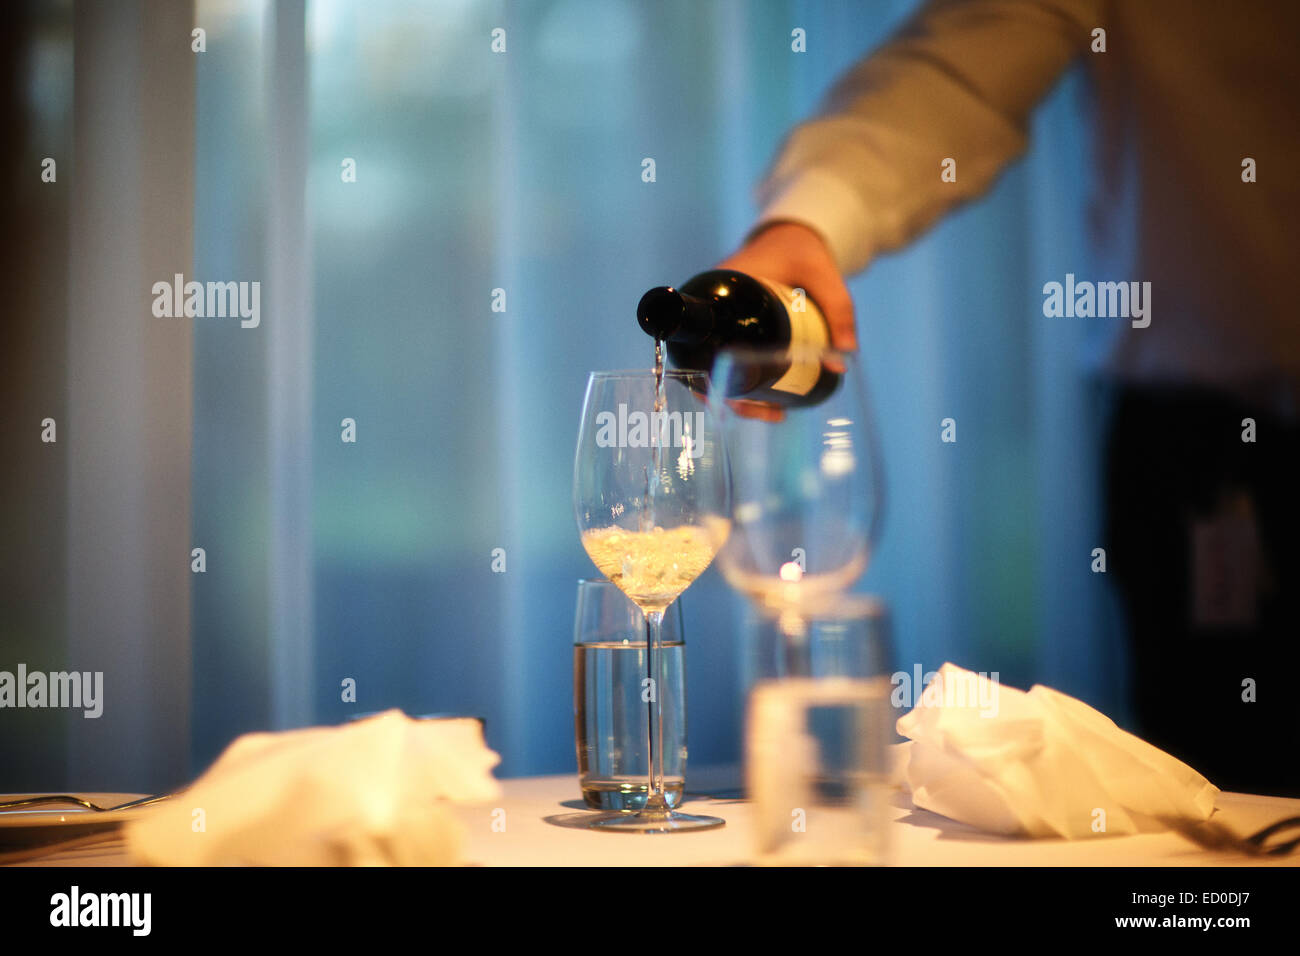 Cropped shot of man in room pouring white wine in wineglass - Stock Image